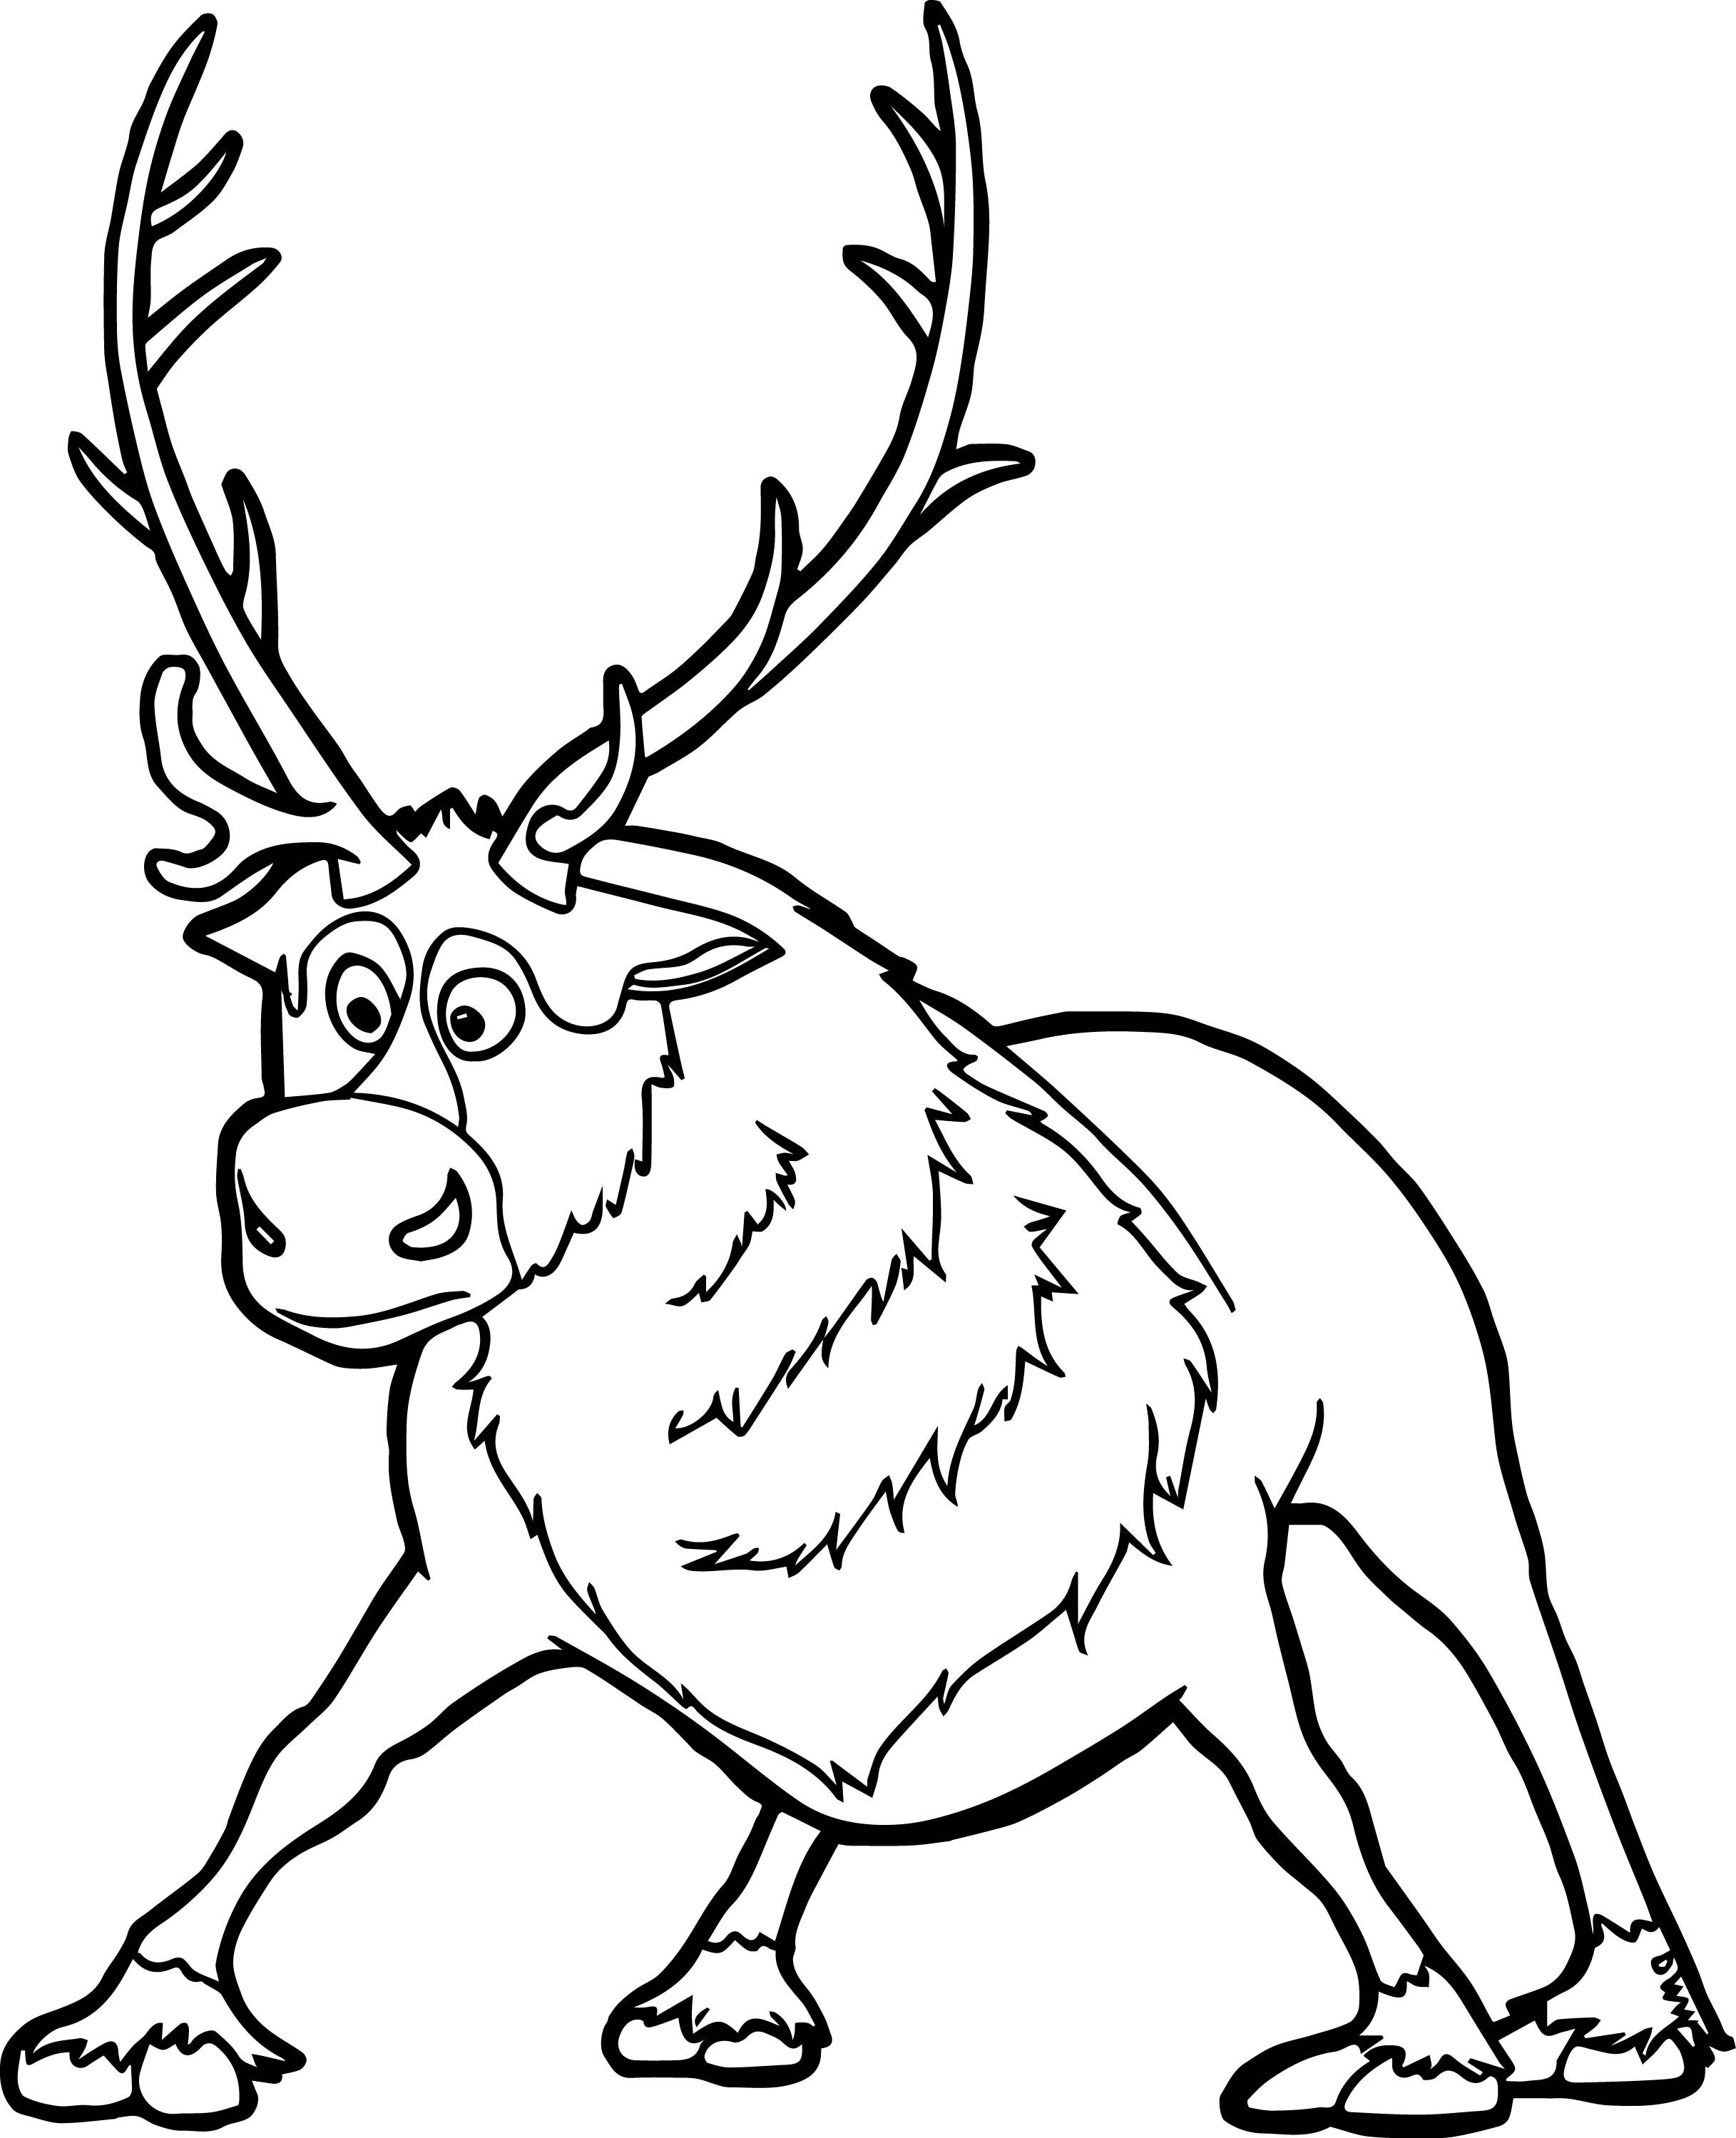 sven coloring pages for kids - photo#4